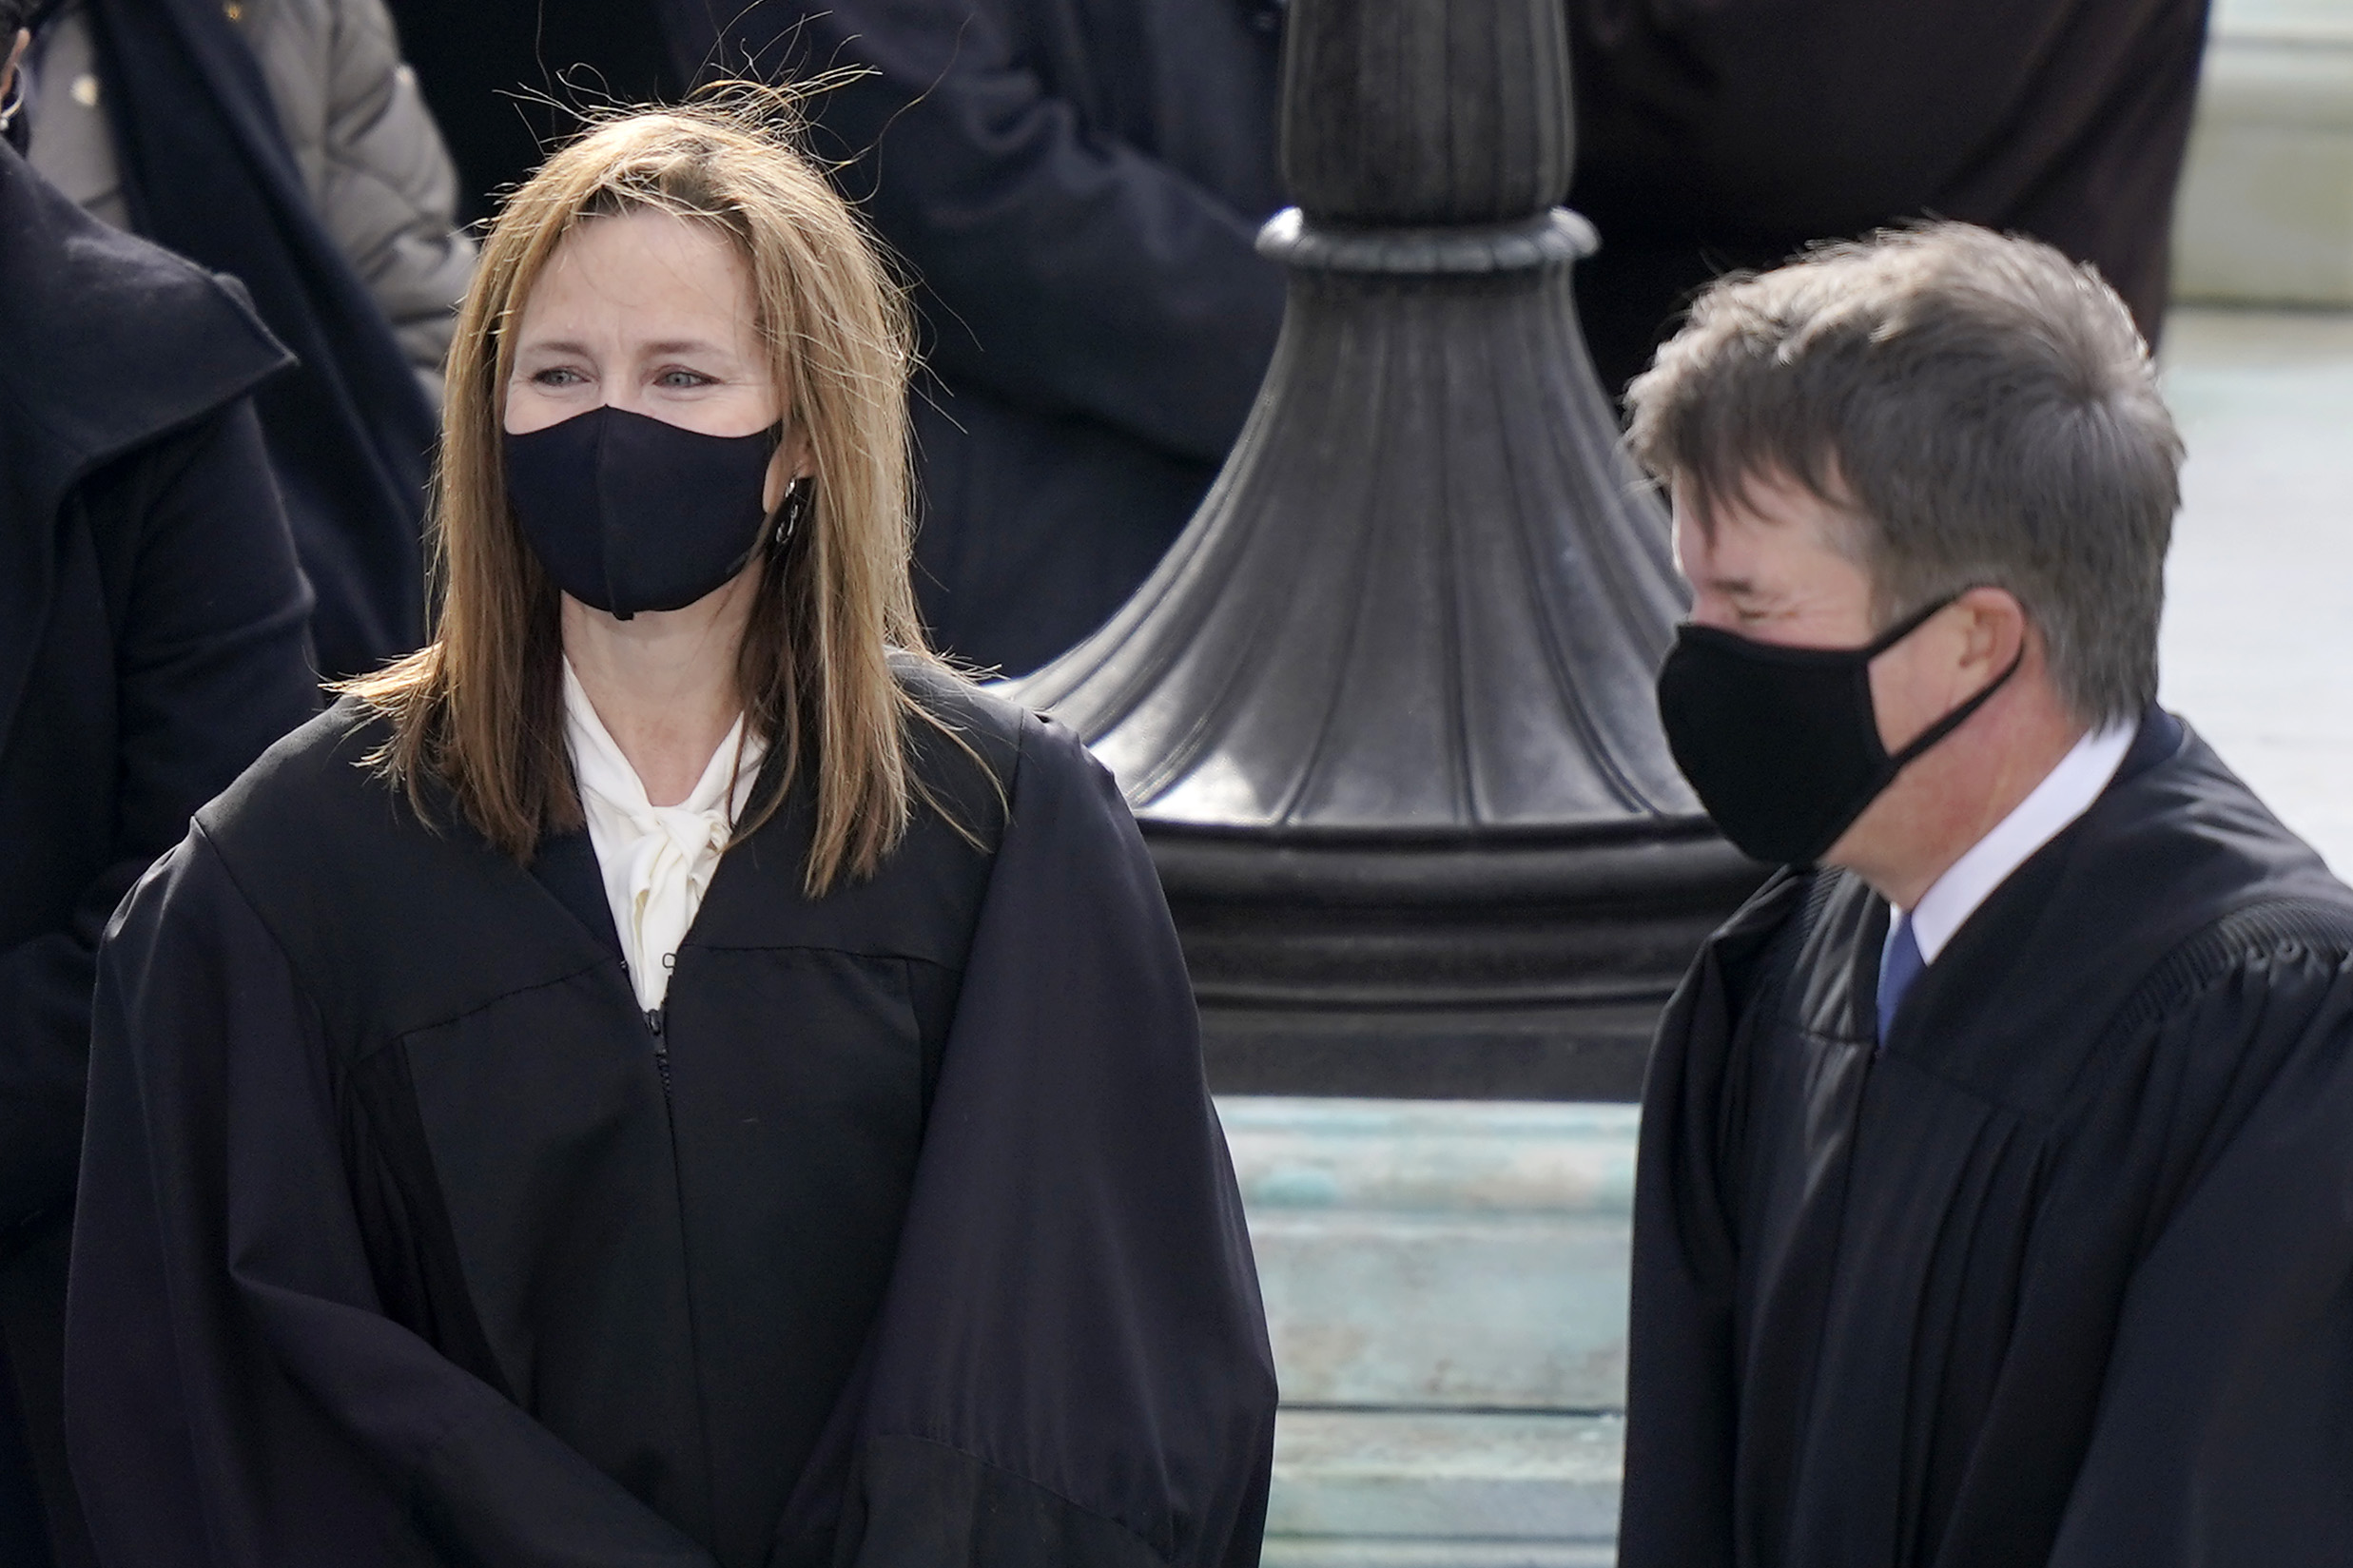 Justices Barrett, left, and Kavanaugh, in black judicial robes and face masks, stand outdoors.